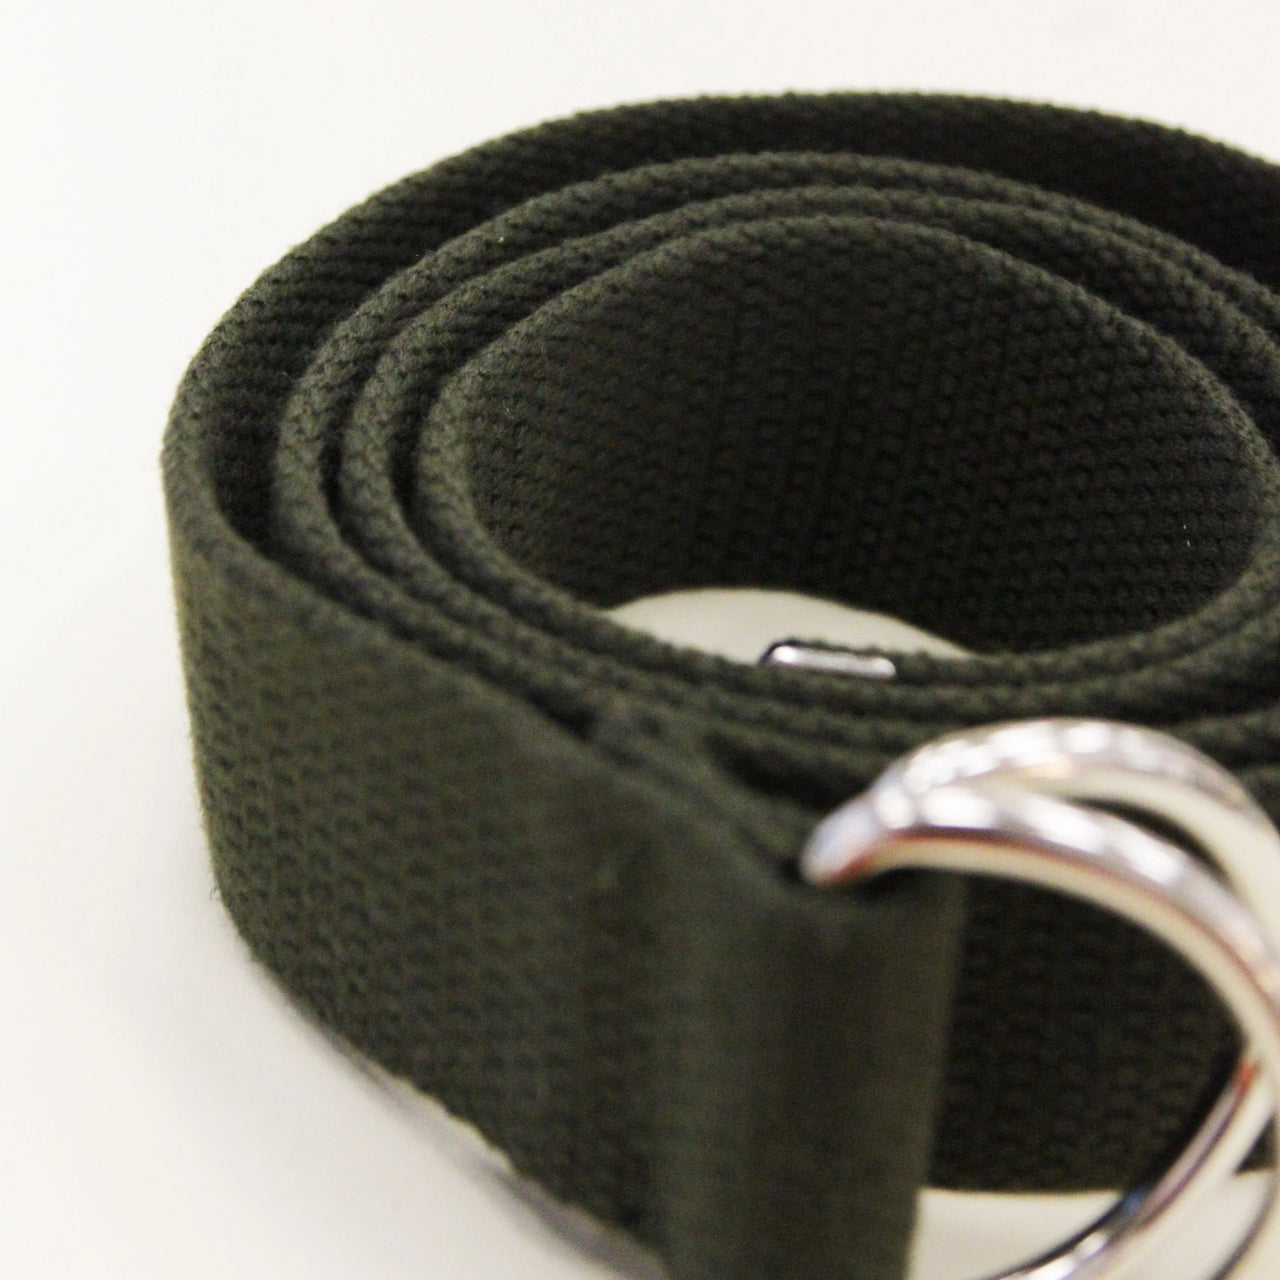 YLICO Khaki Fabric D-Ring Belt